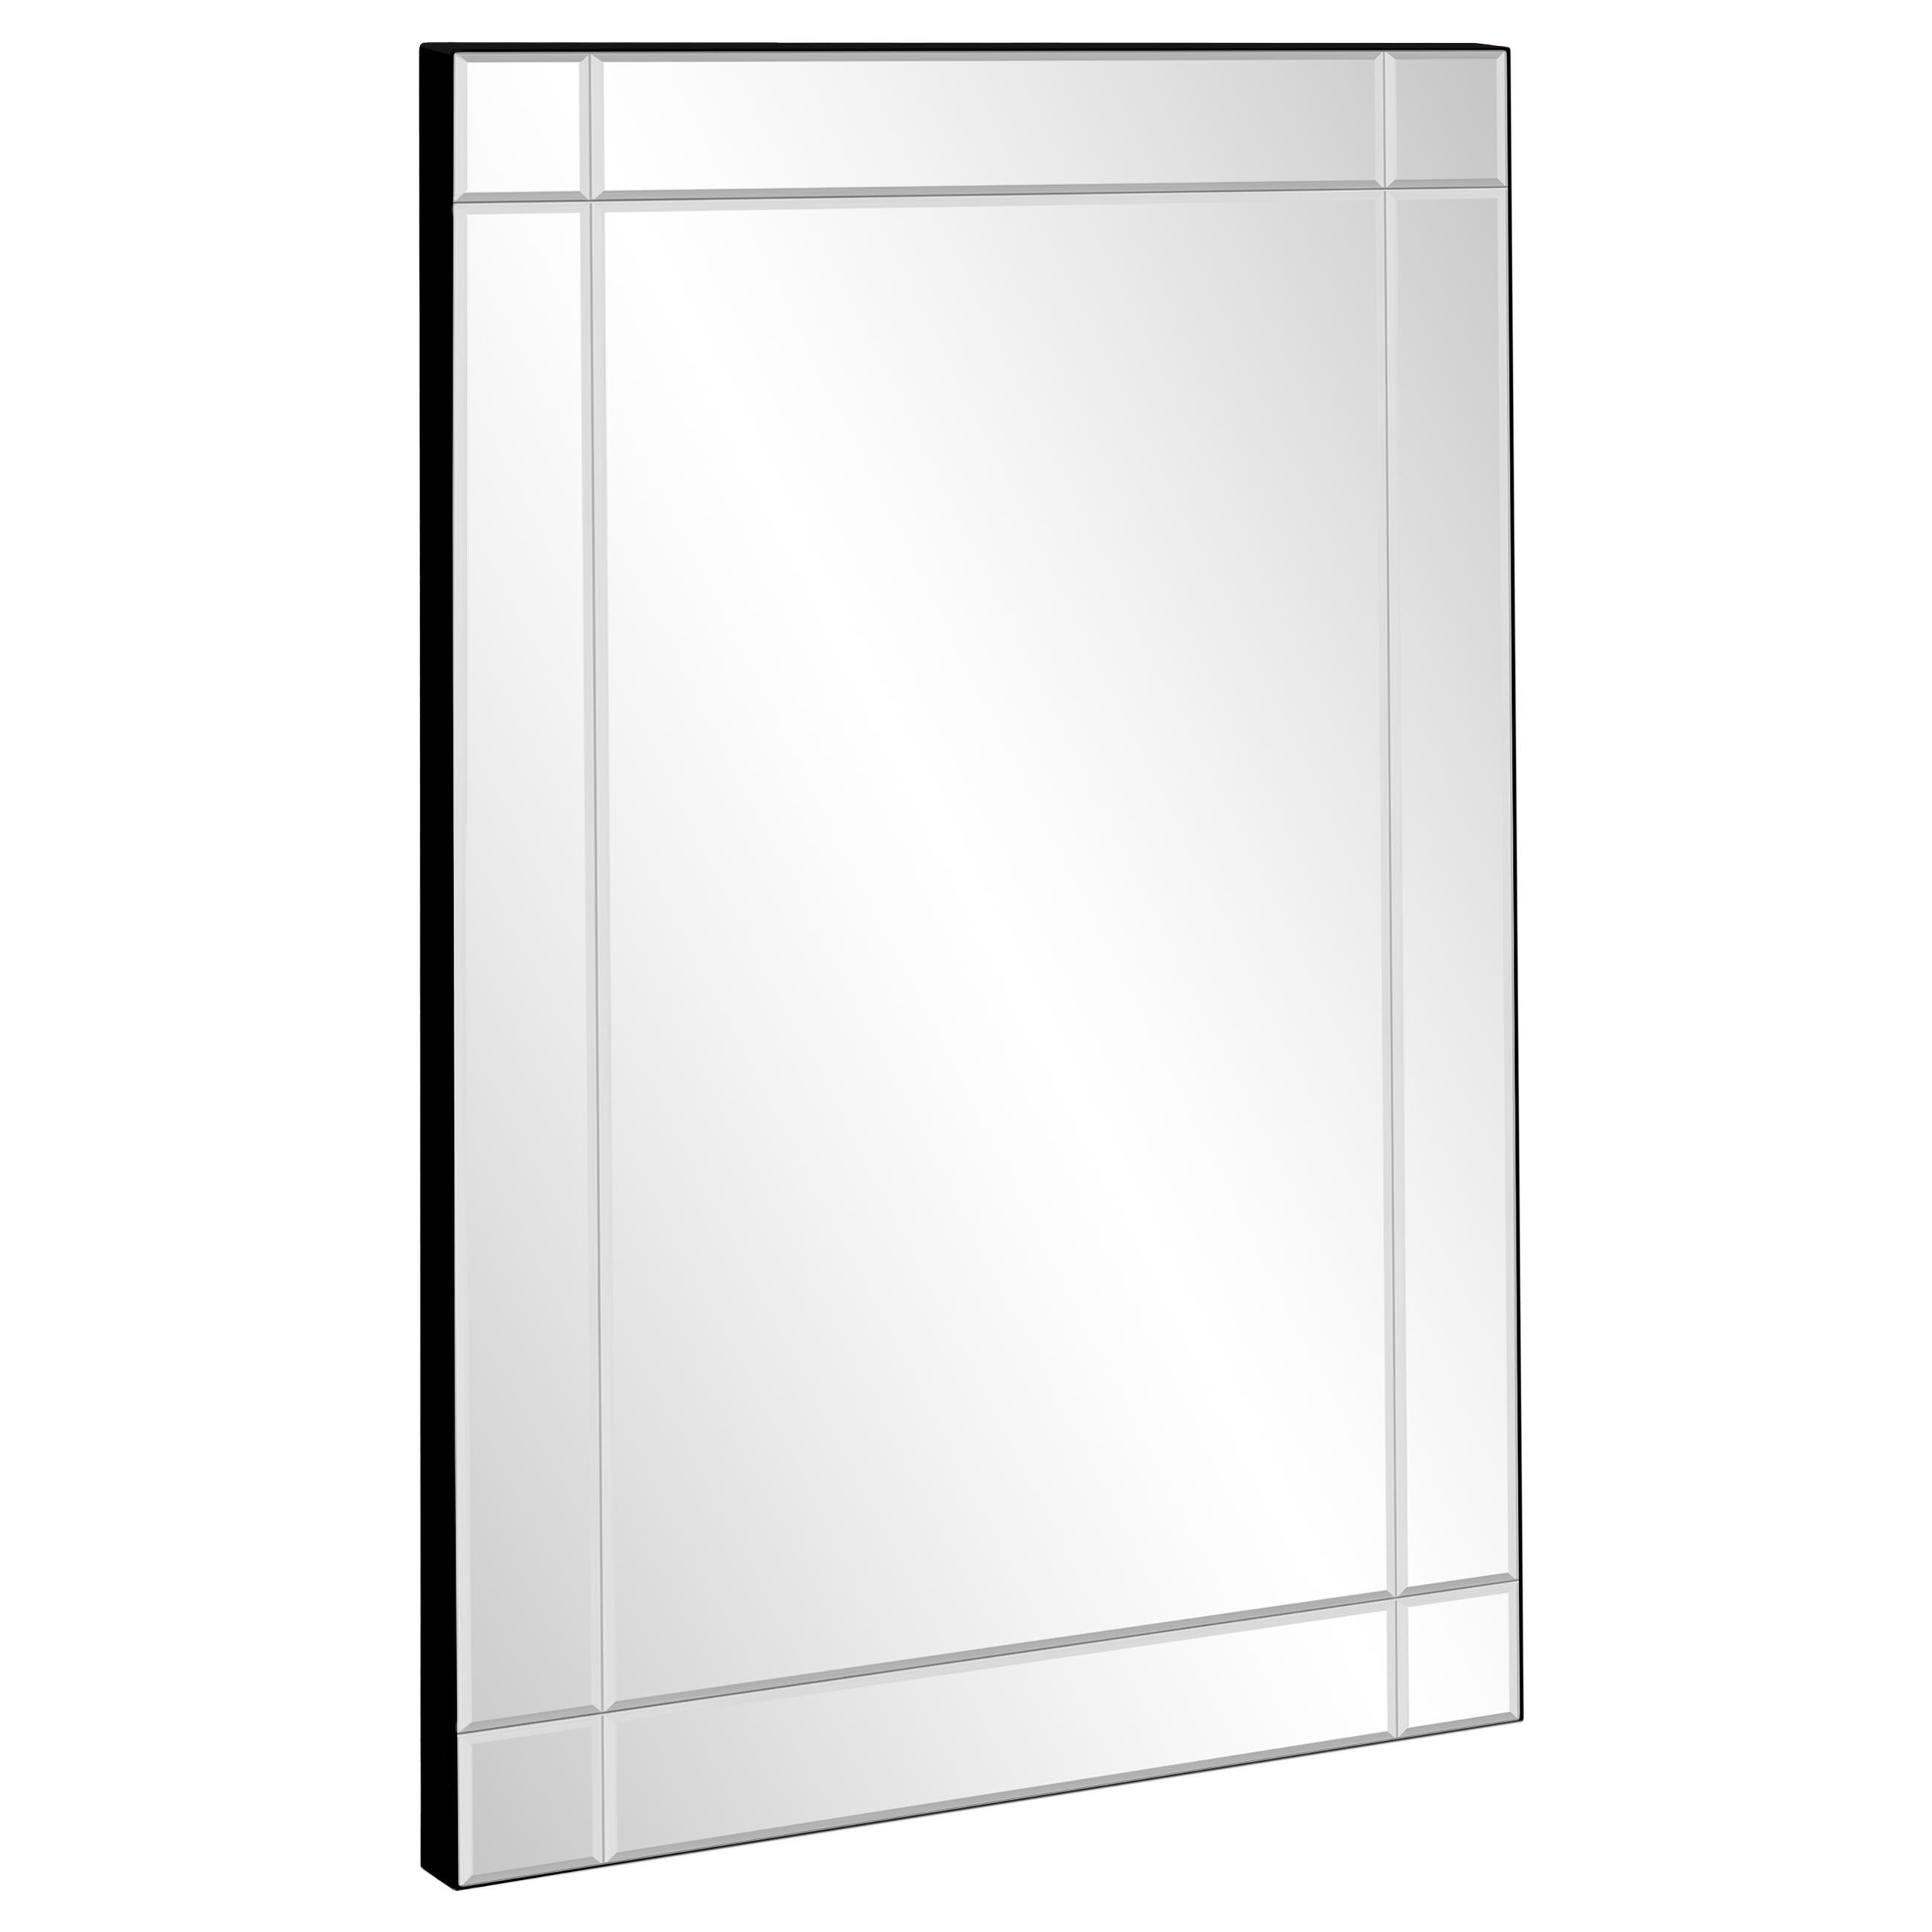 "Best Choice Products 36""x24"" Rectangular Bedroom Bathroom Entryway Decorative Frameless Wall Mirror"